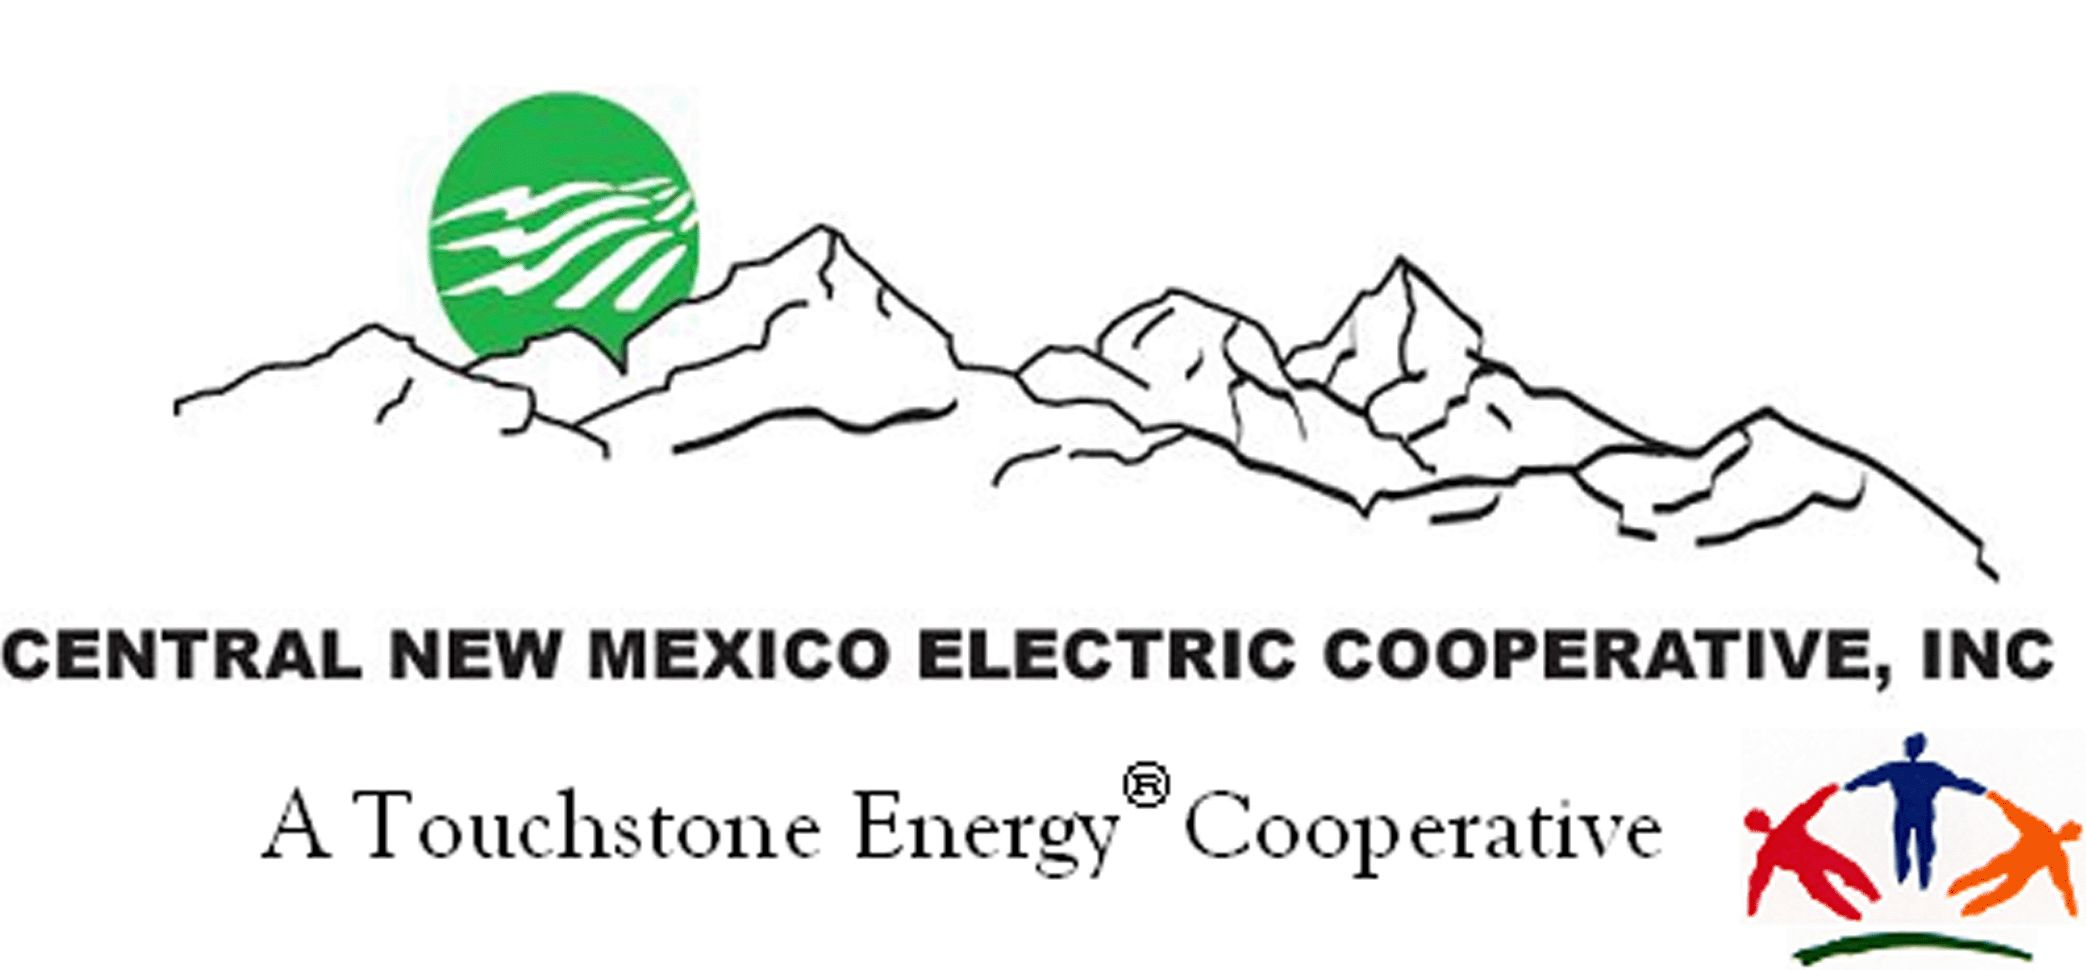 Central New Mexico Electric Cooperative, Moriarty, NM